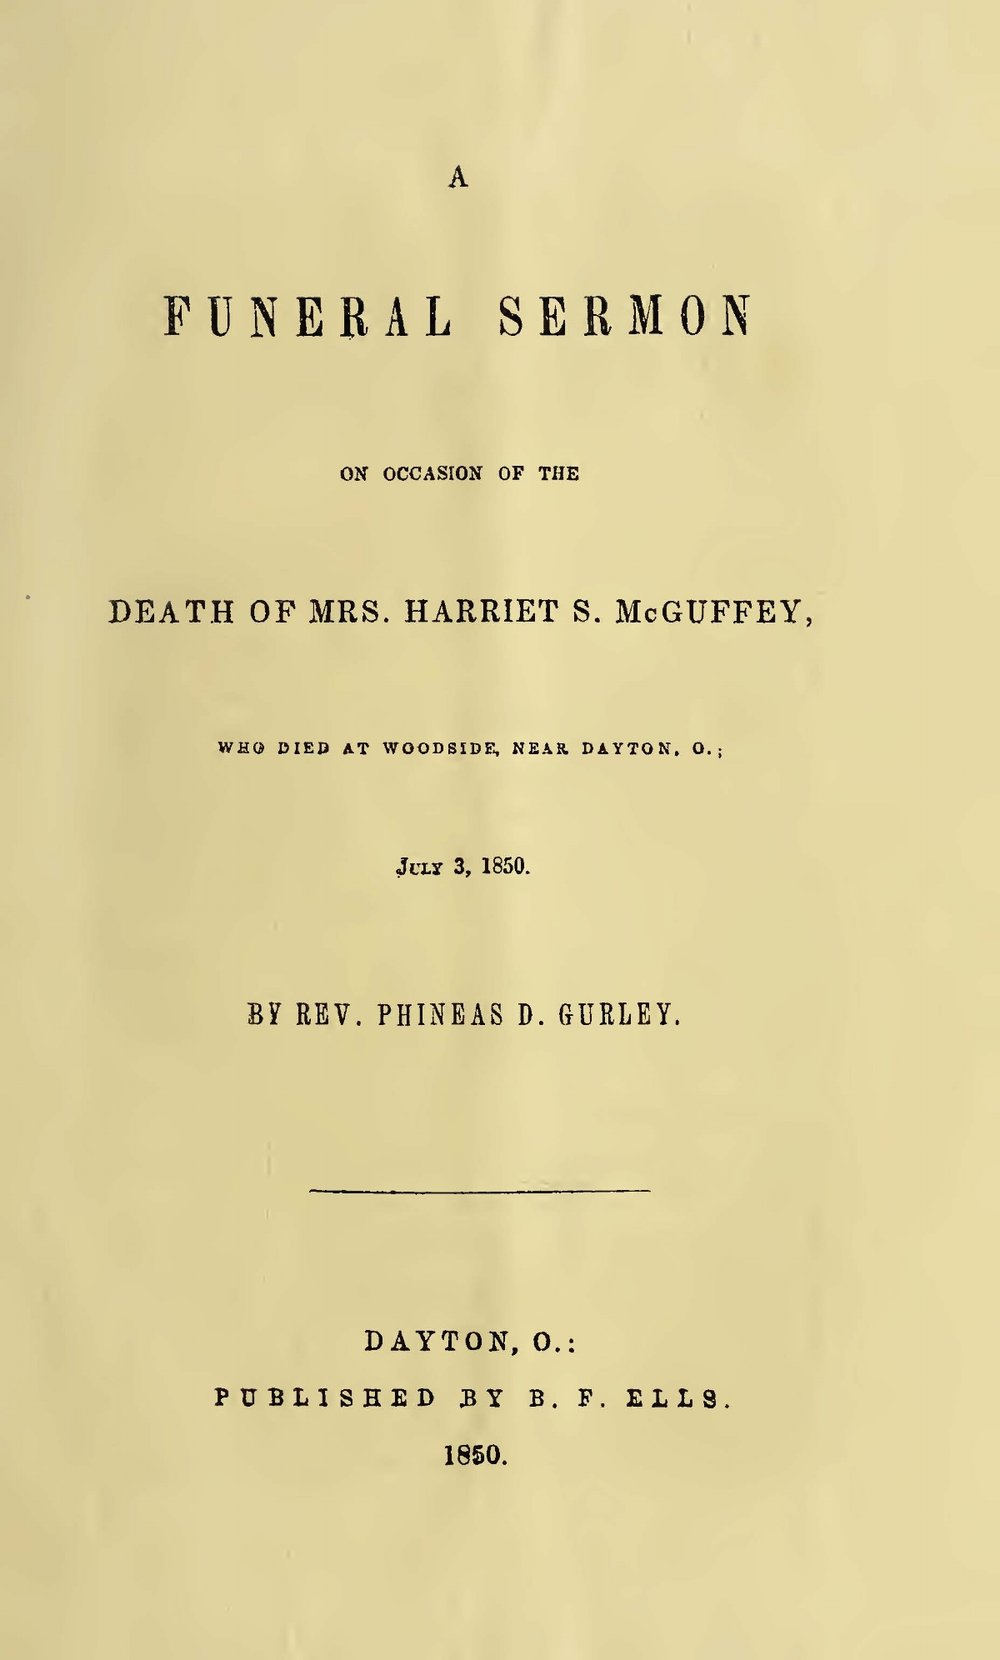 Gurley, Phineas Densmore, A Funeral Sermon for Mrs. Harriet S. McGuffey Title Page.jpg